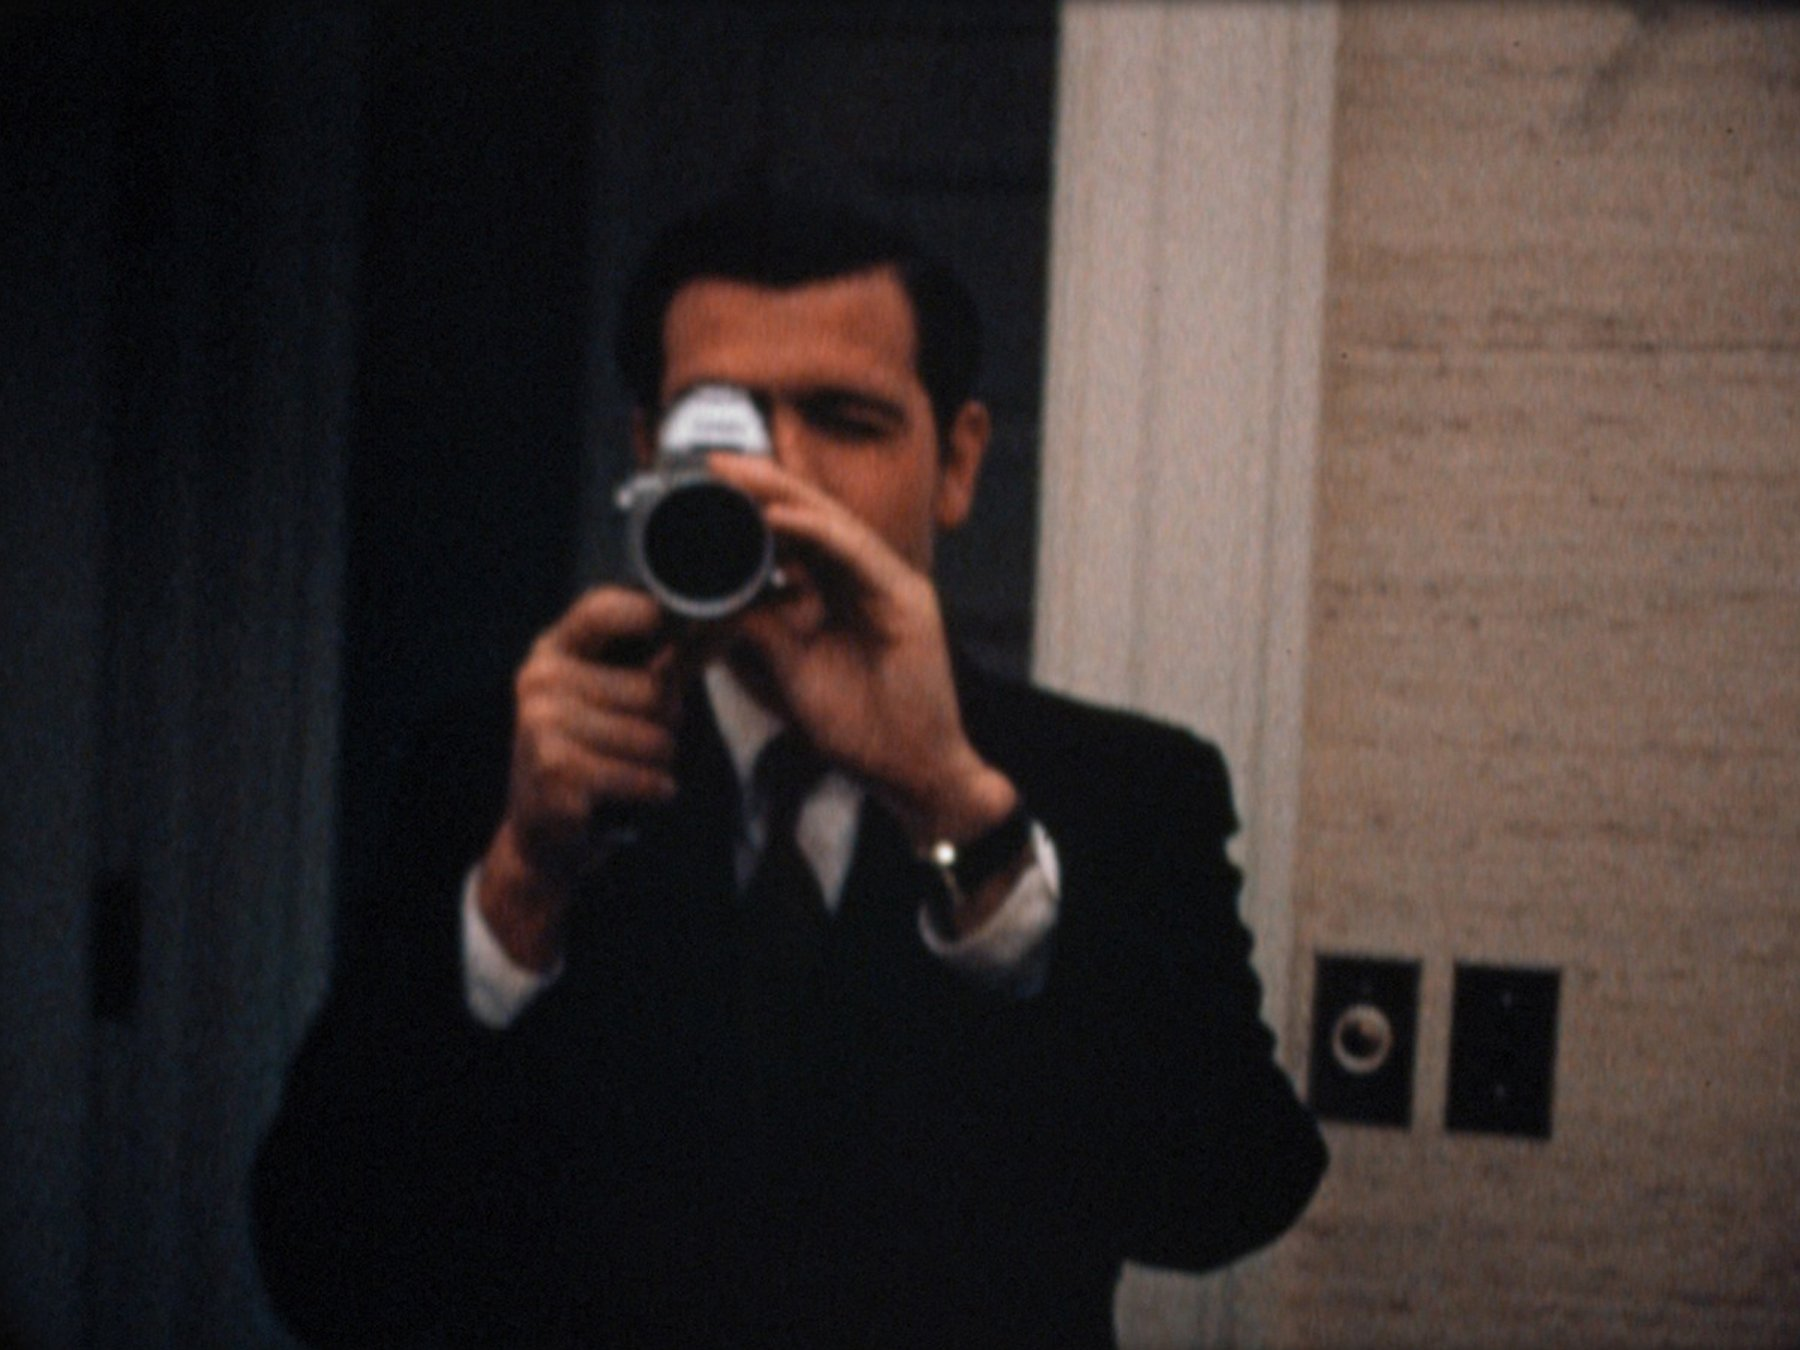 Special Assistant Dwight Chapin films Haldeman filming him at the White House on the night of the Apollo 11 moon landing (July 20, 1969). Super 8 film still courtesy of Dipper Films.